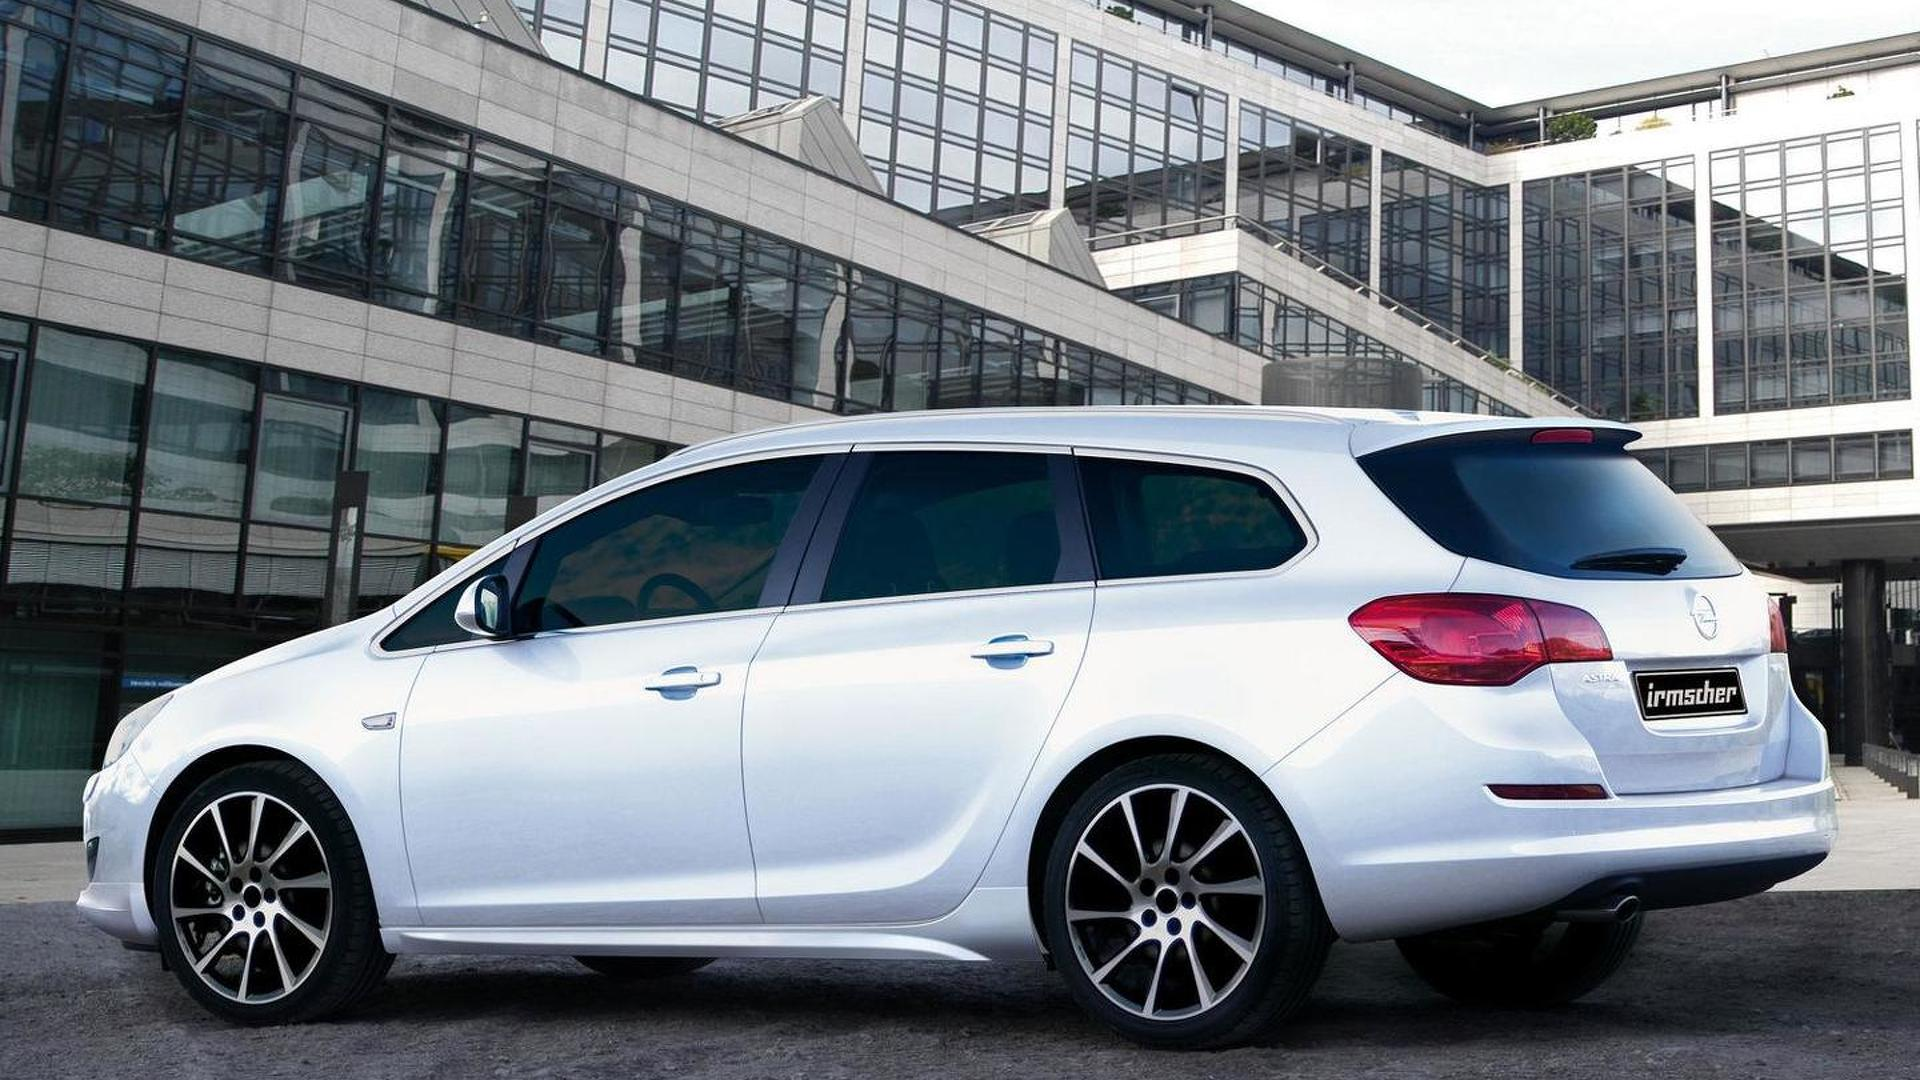 Astra sports tourer - Opel Astra Sport Tourer By Irmscher